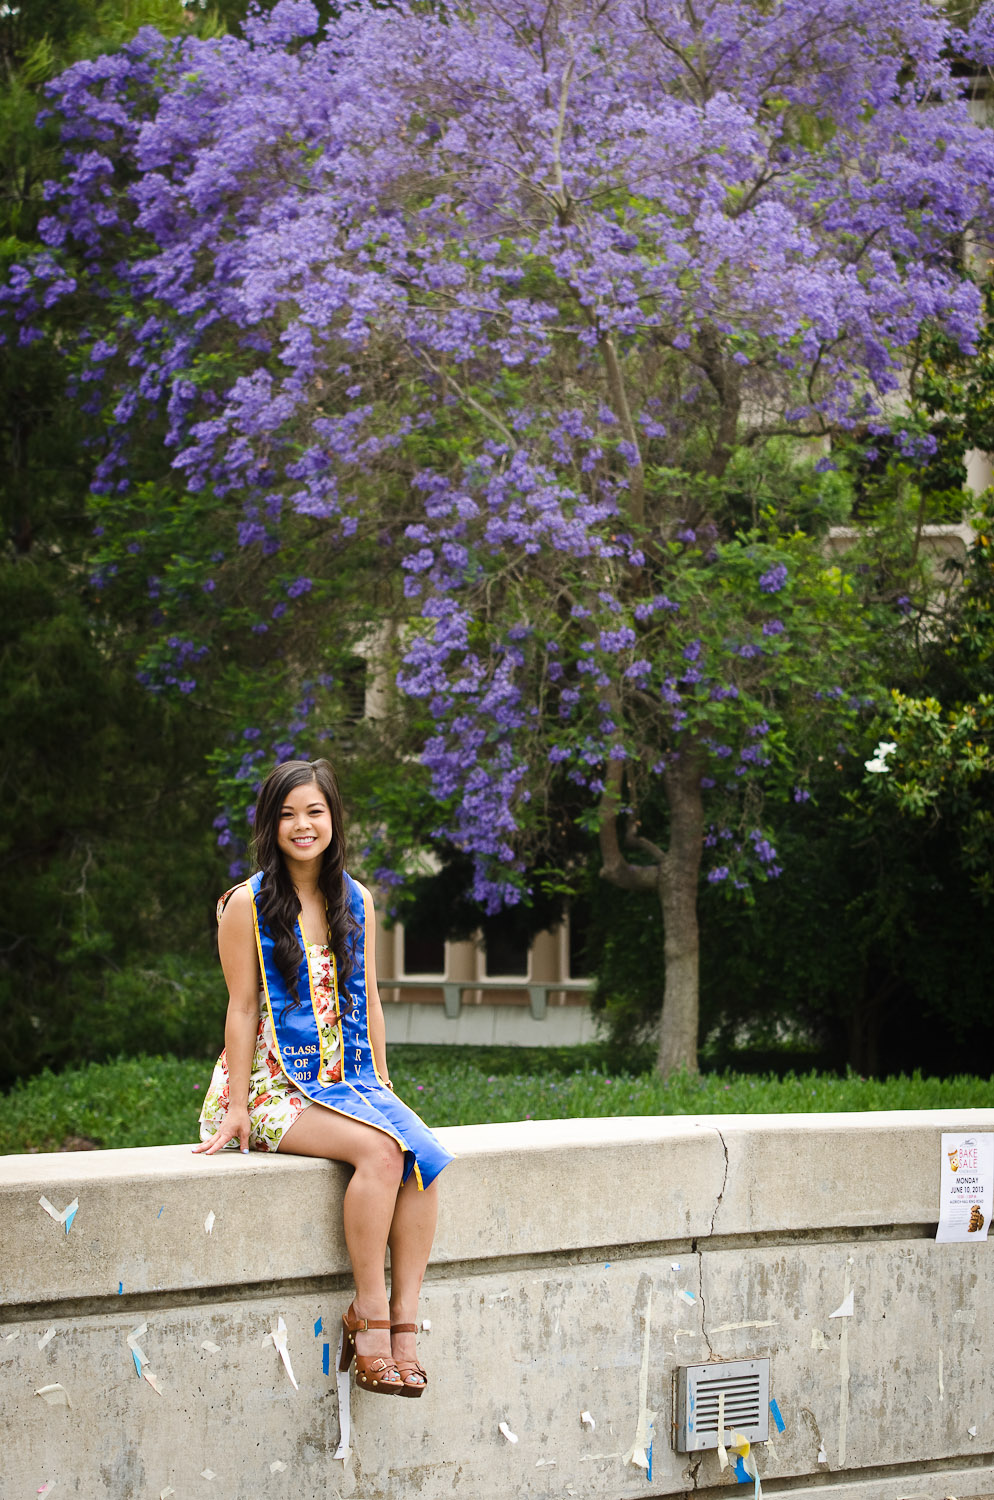 Bryan-Miraflor-Photography-Christine-Grad-Photos-20130609-0027.jpg